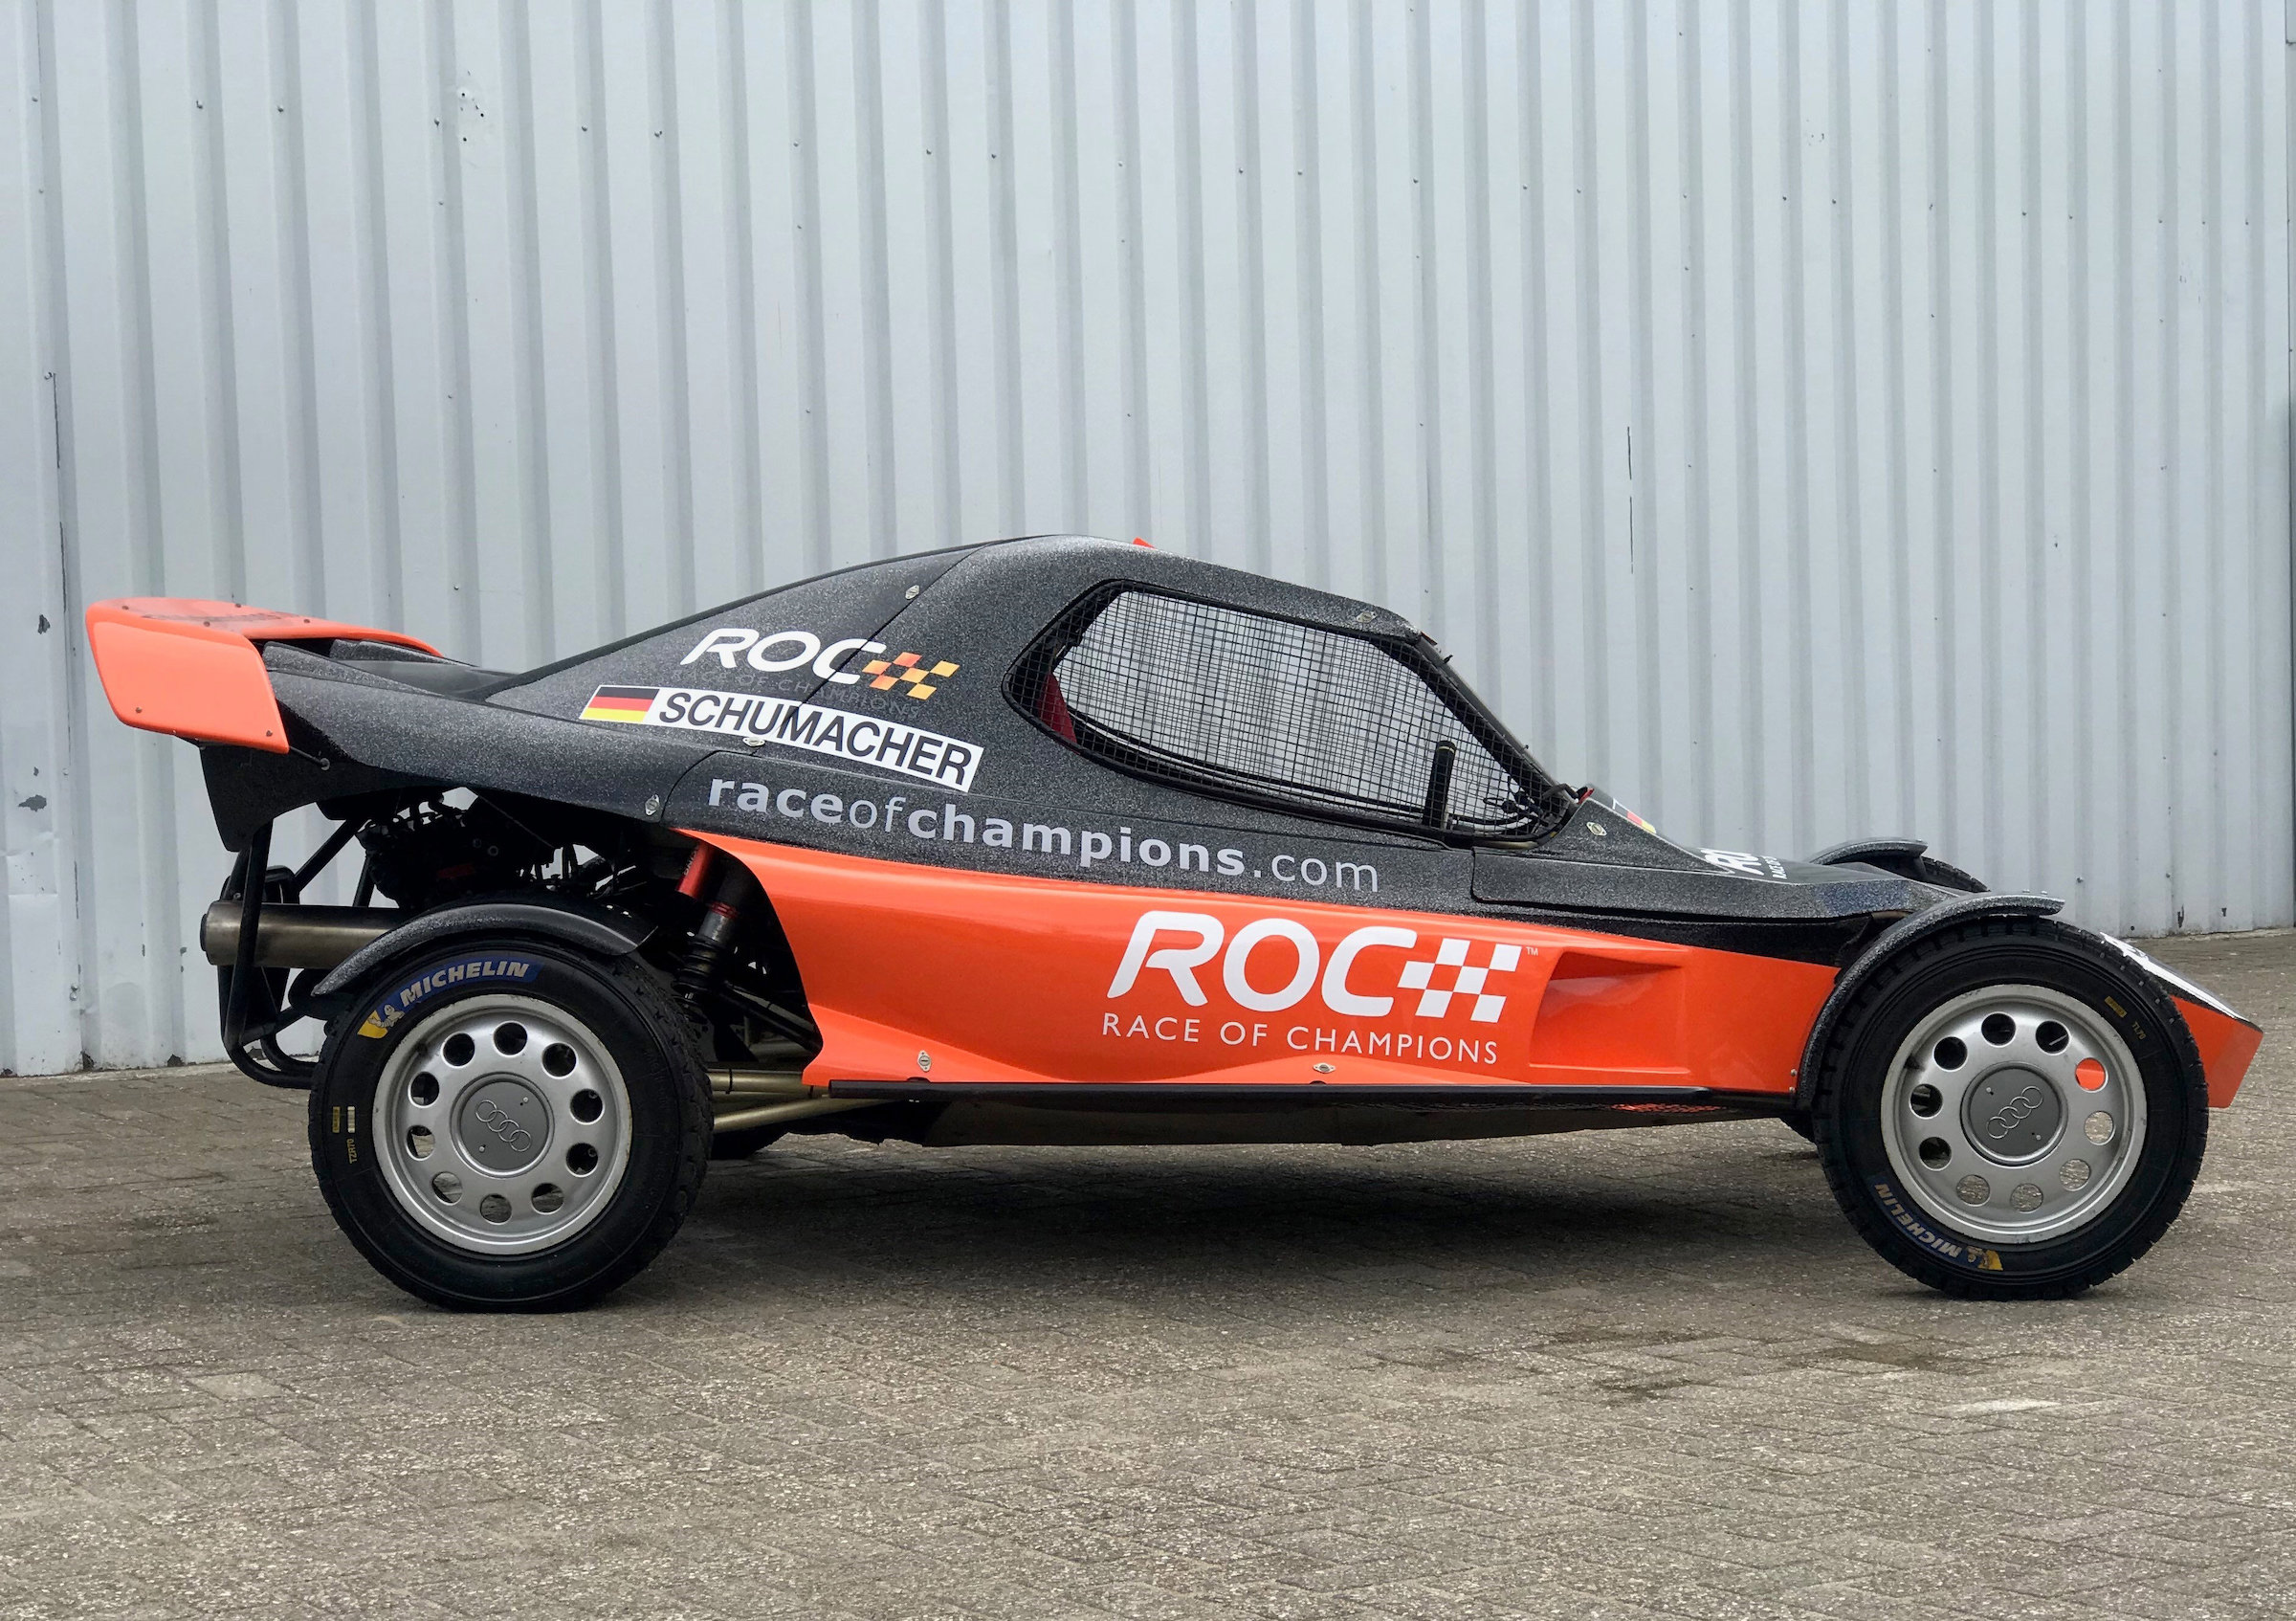 For Sale The Race Of Champions Buggy Driven By Michael Schumacher Sebastian Vettel